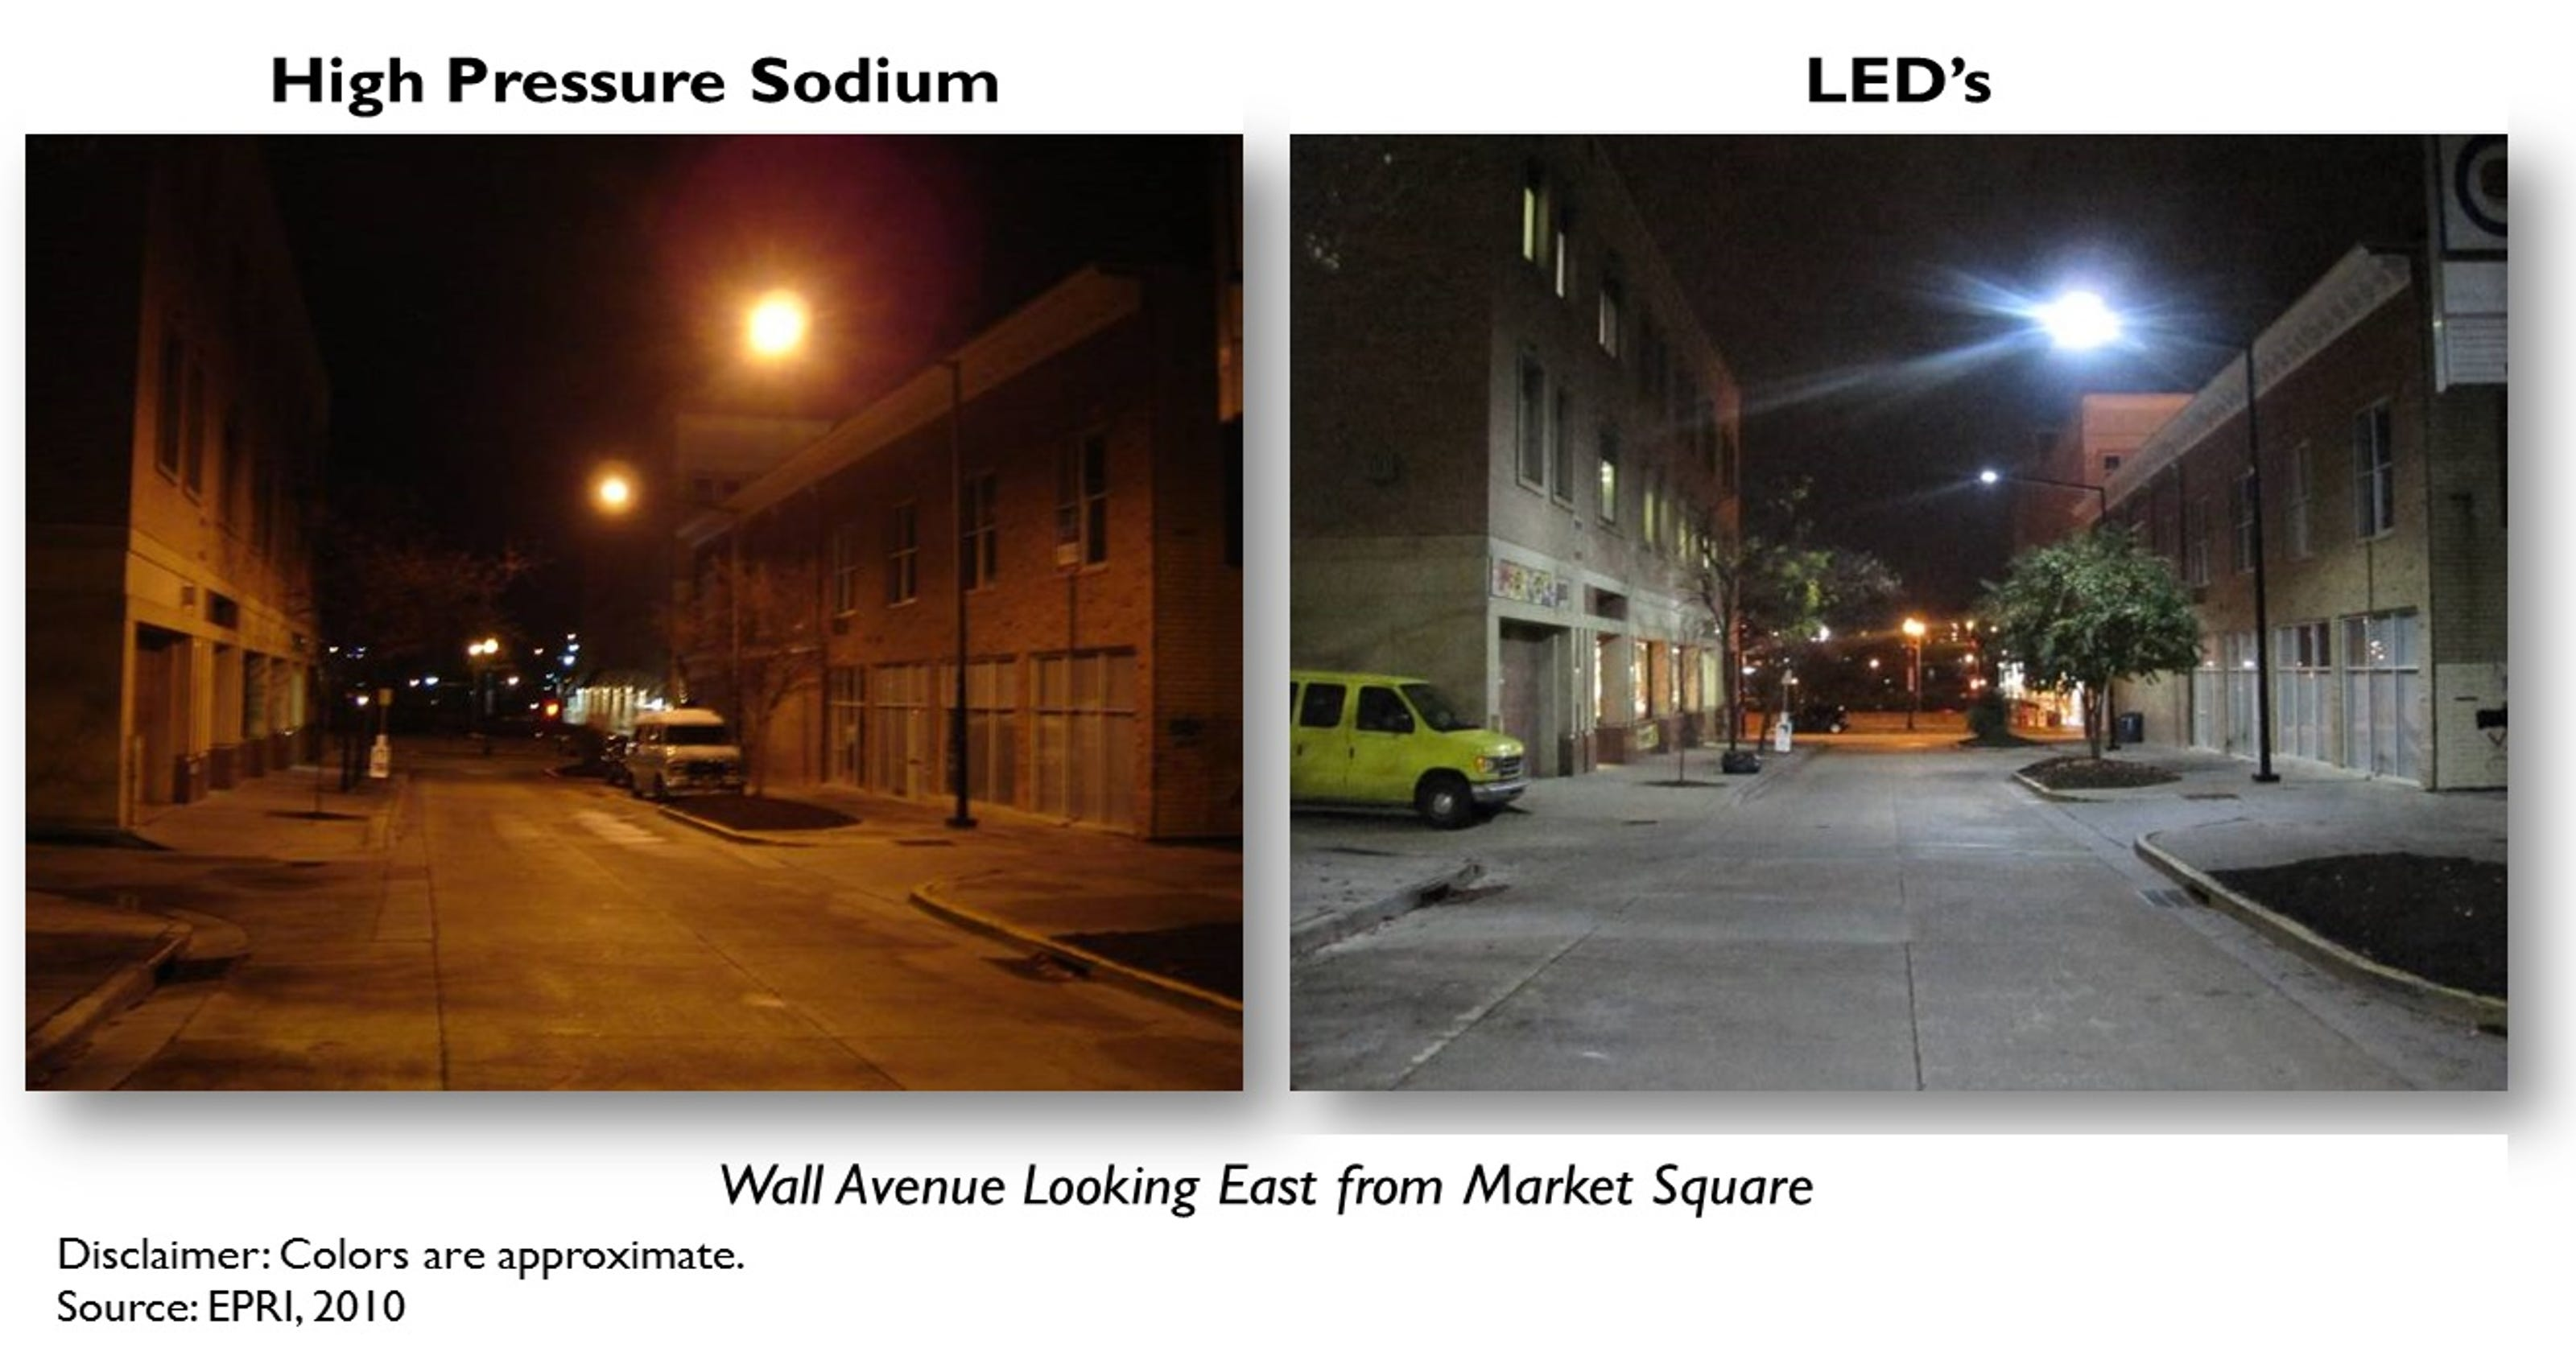 Knoxvilles new led street lights could open night sky